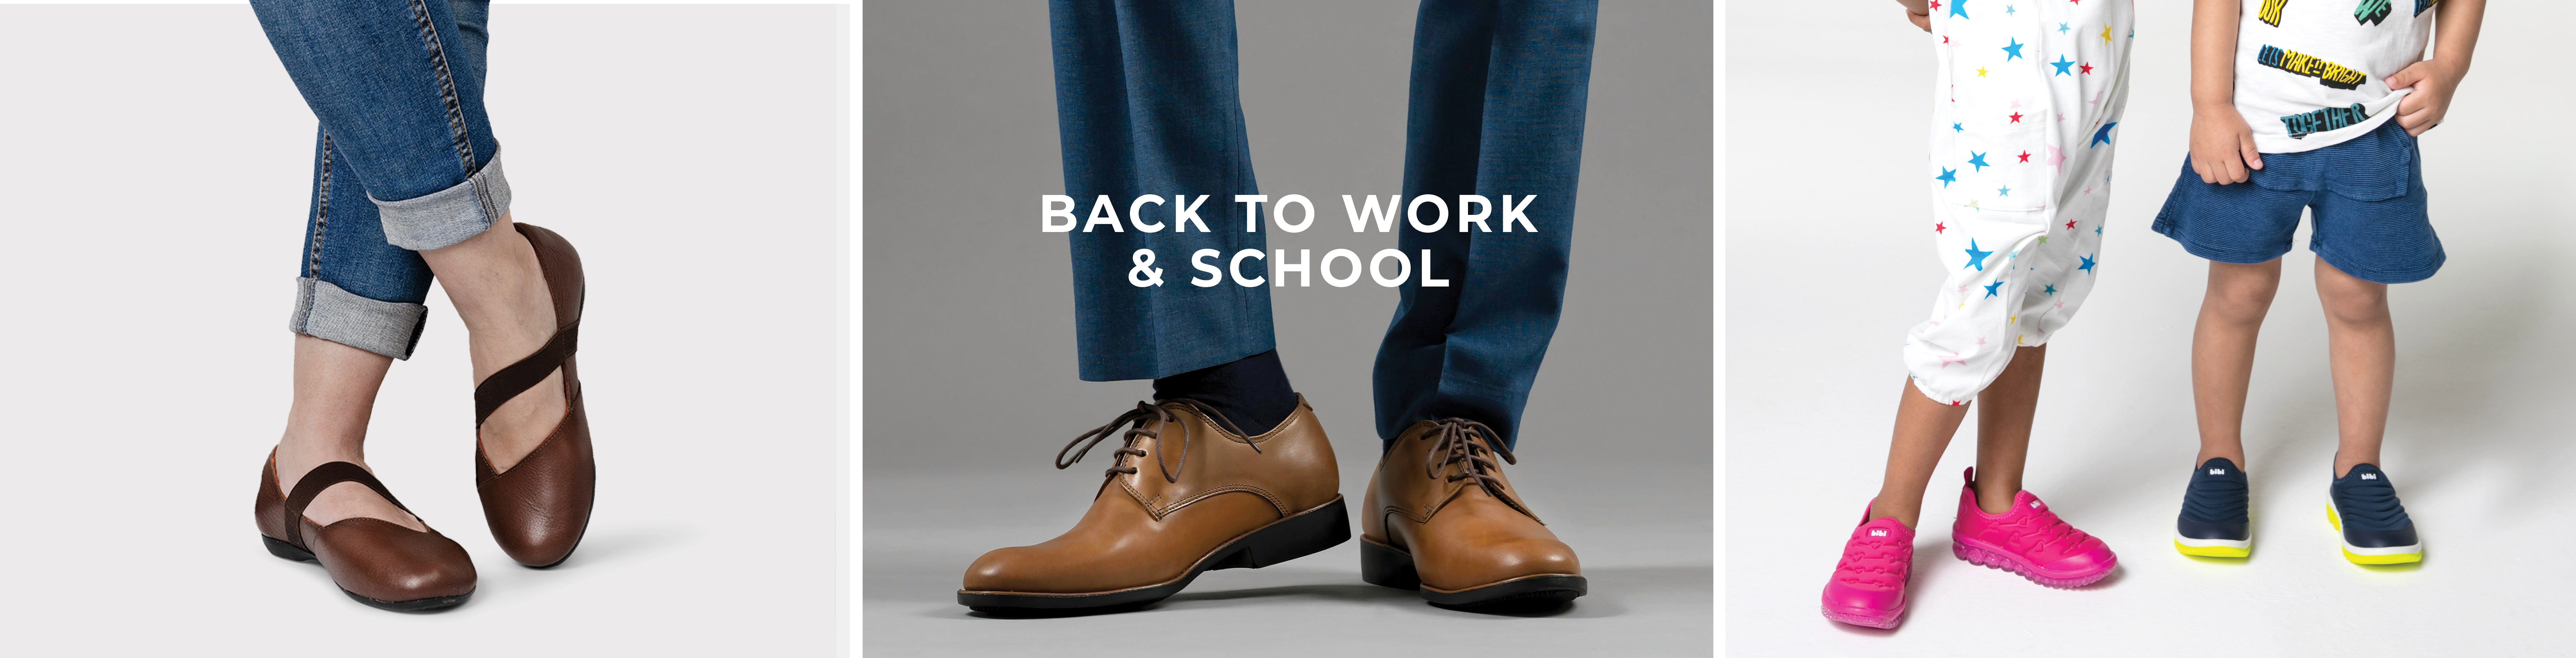 Back to work and school